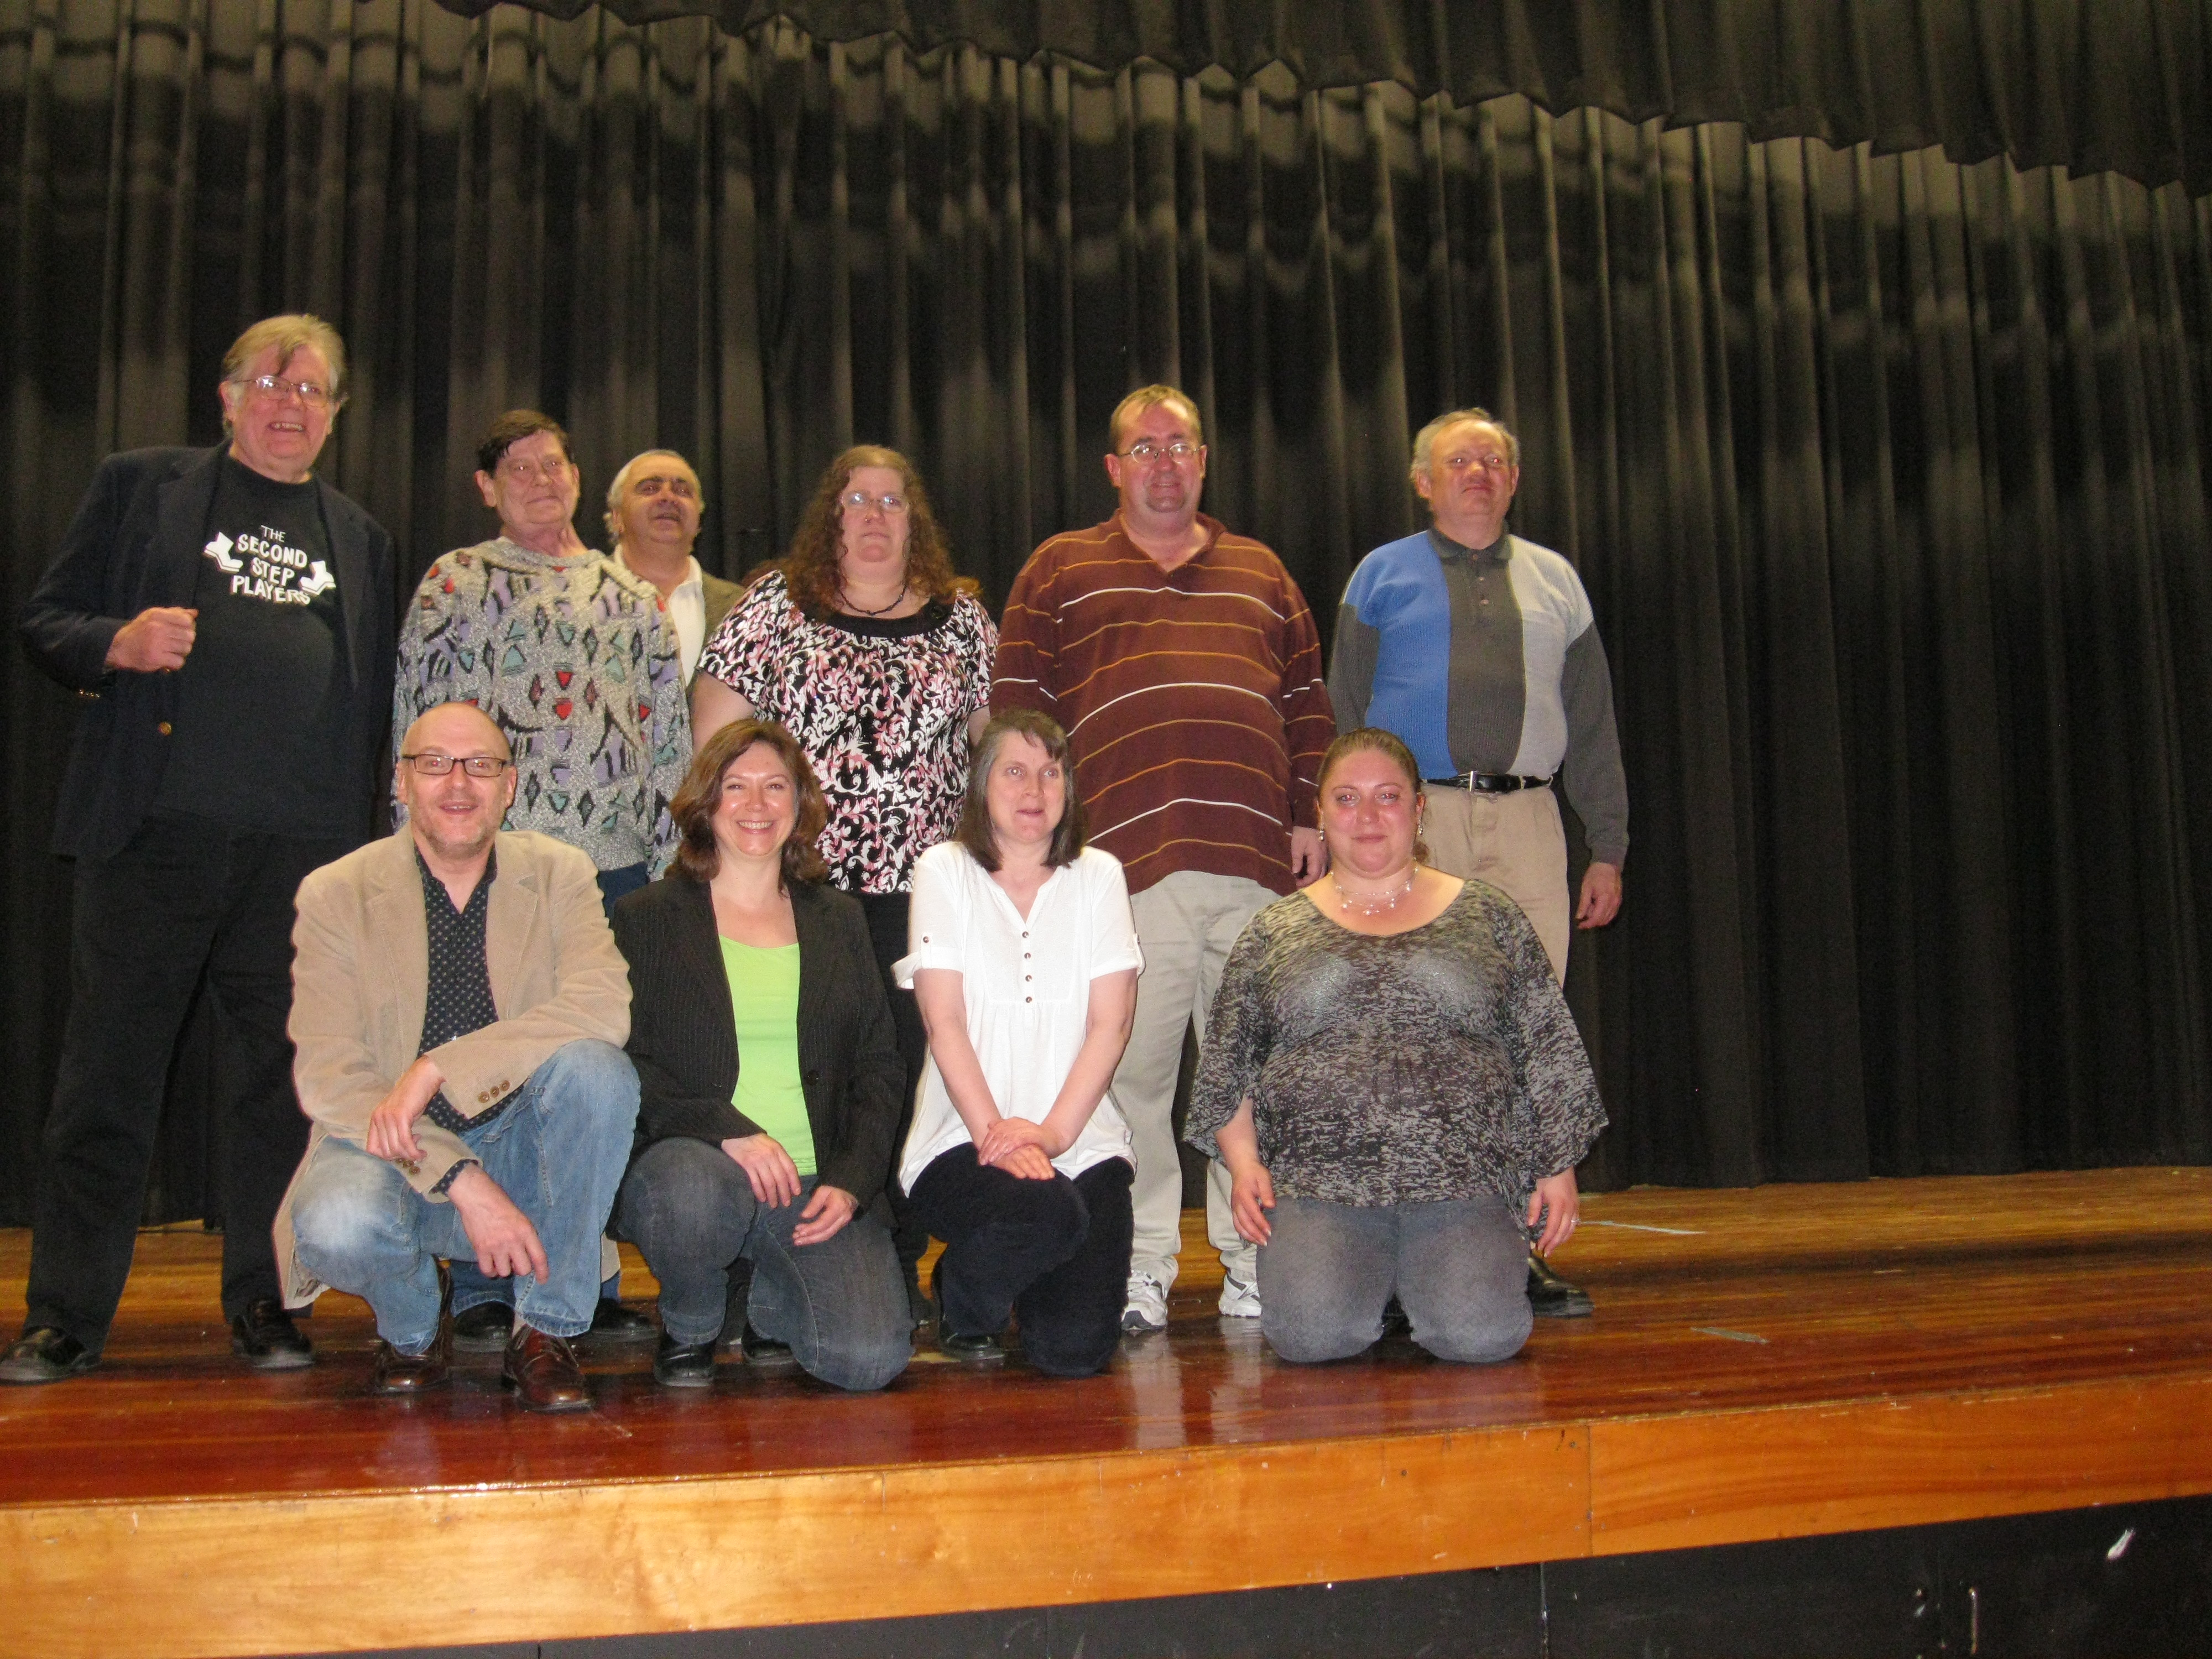 Our Stand Up For Mental Health Connecticut group after a show in Middletown, Connecticut